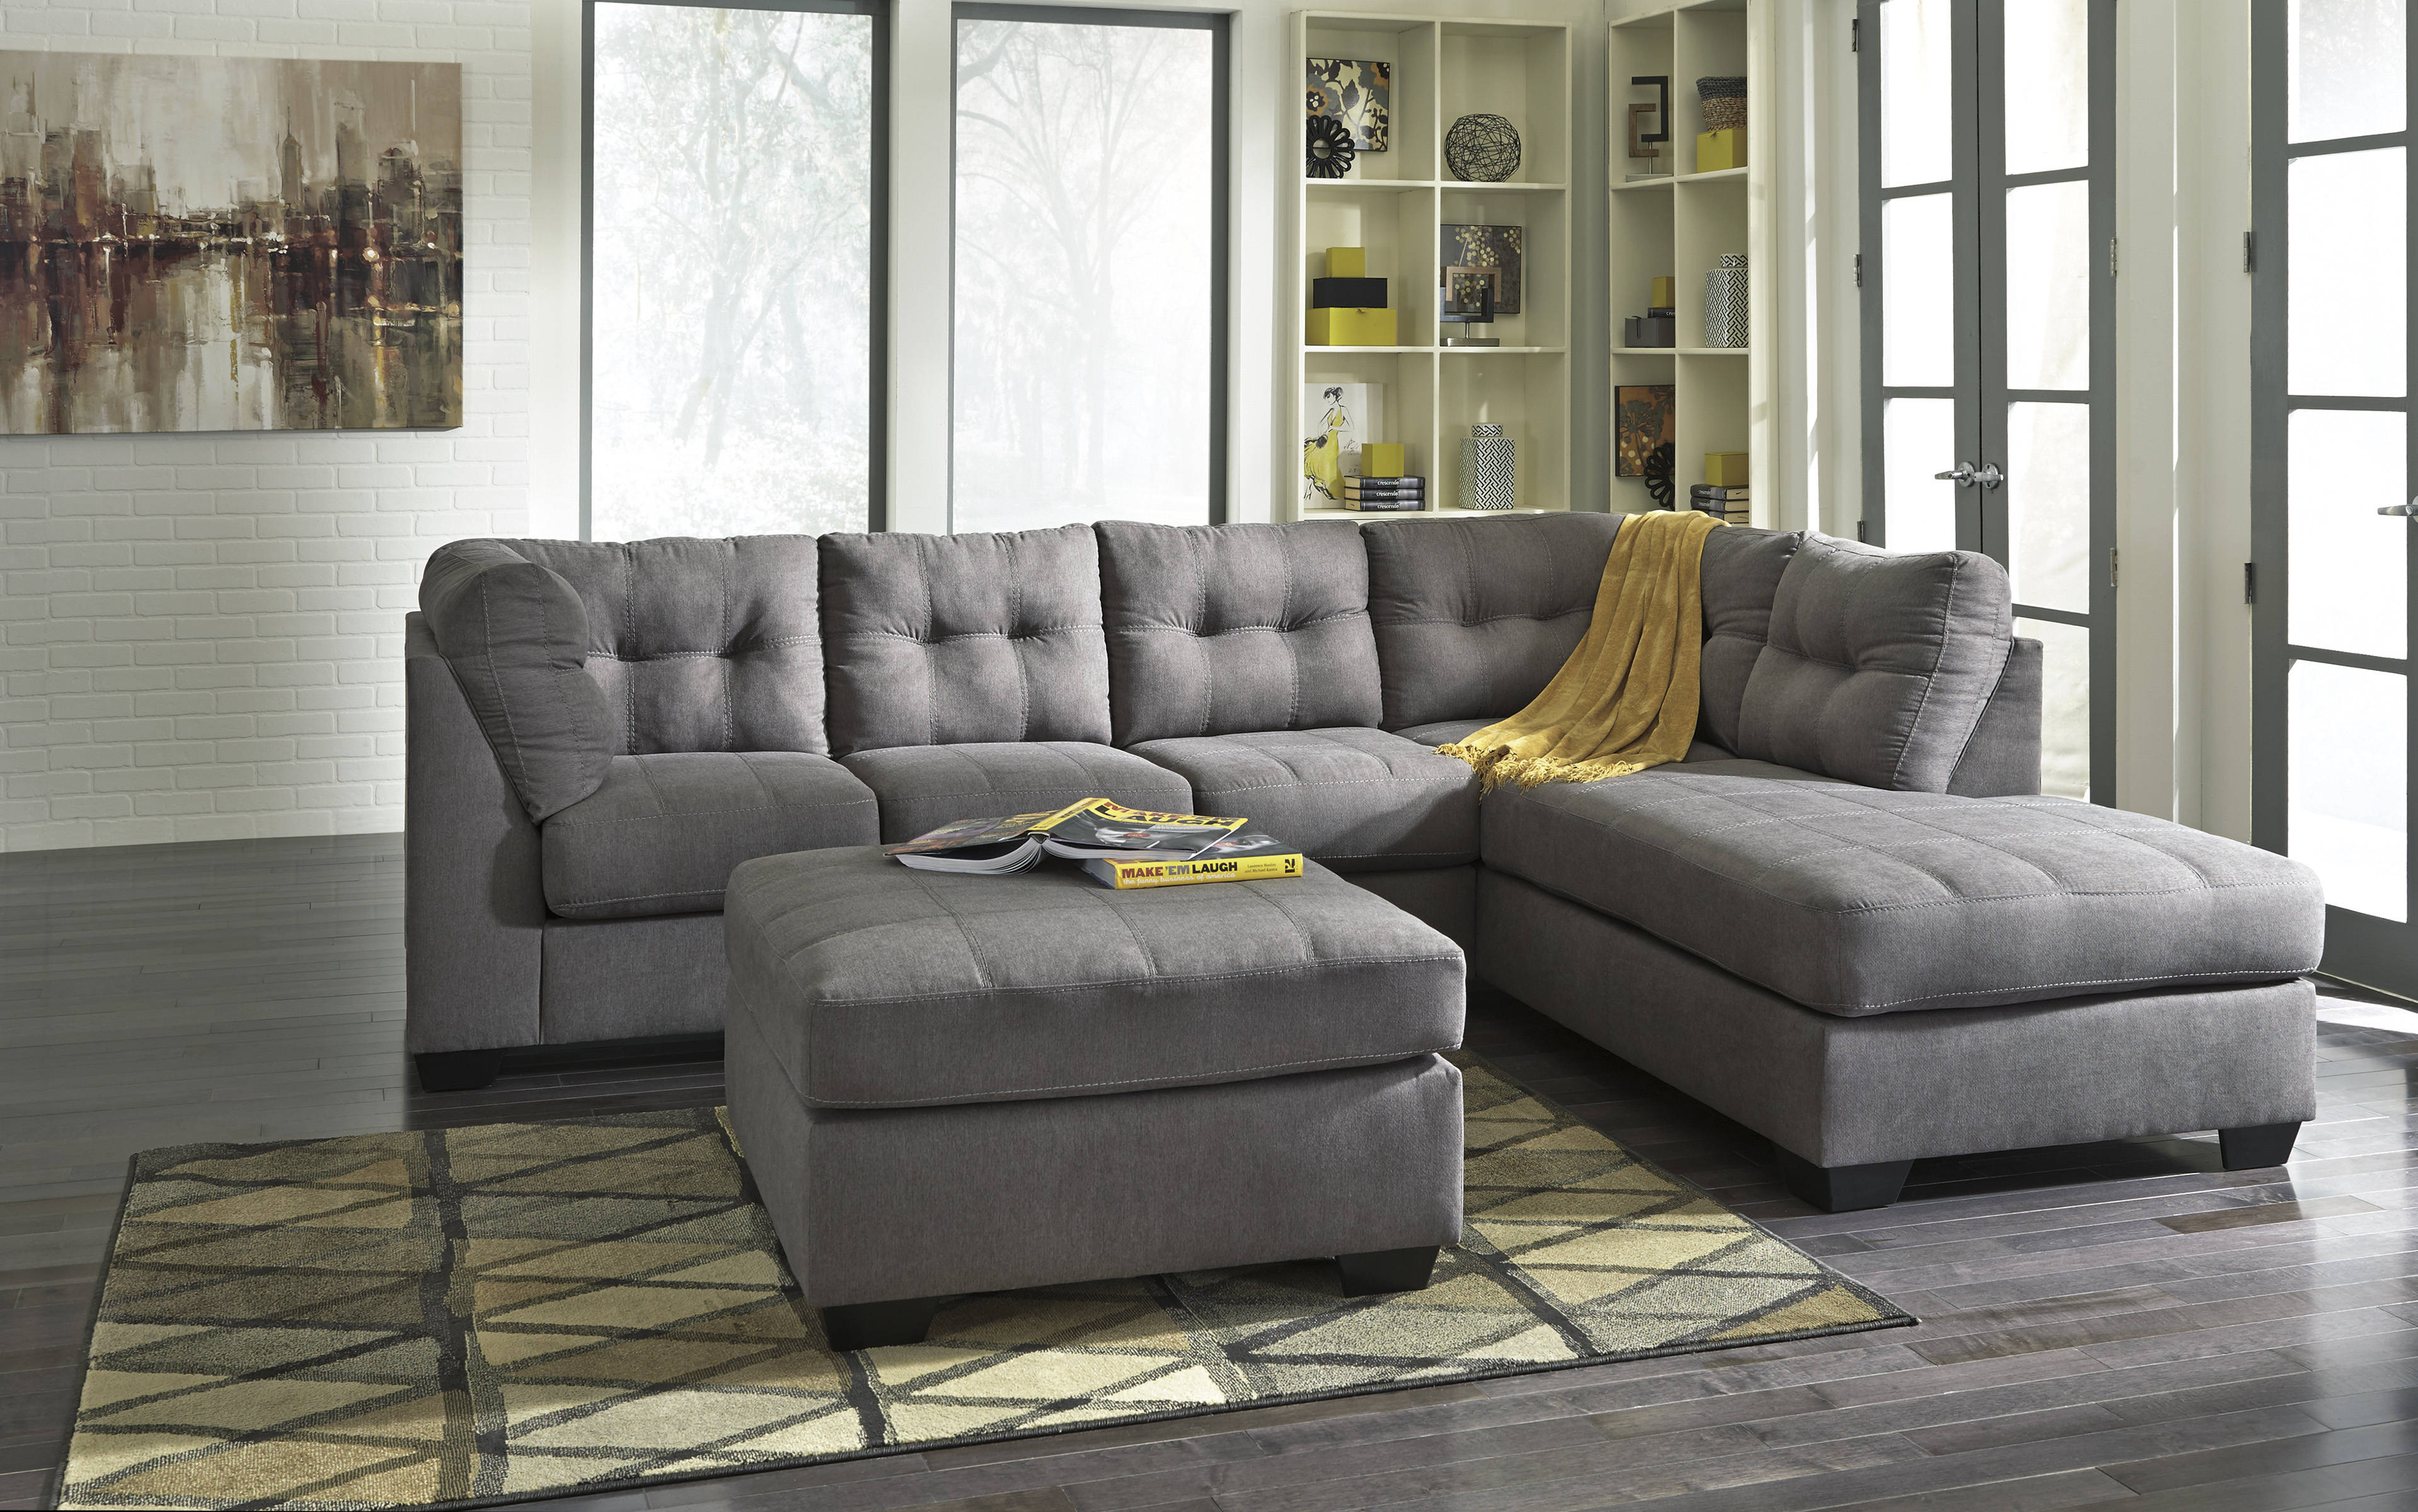 Ashley Furniture Benchcraft Sofa Shapeyourminds Com